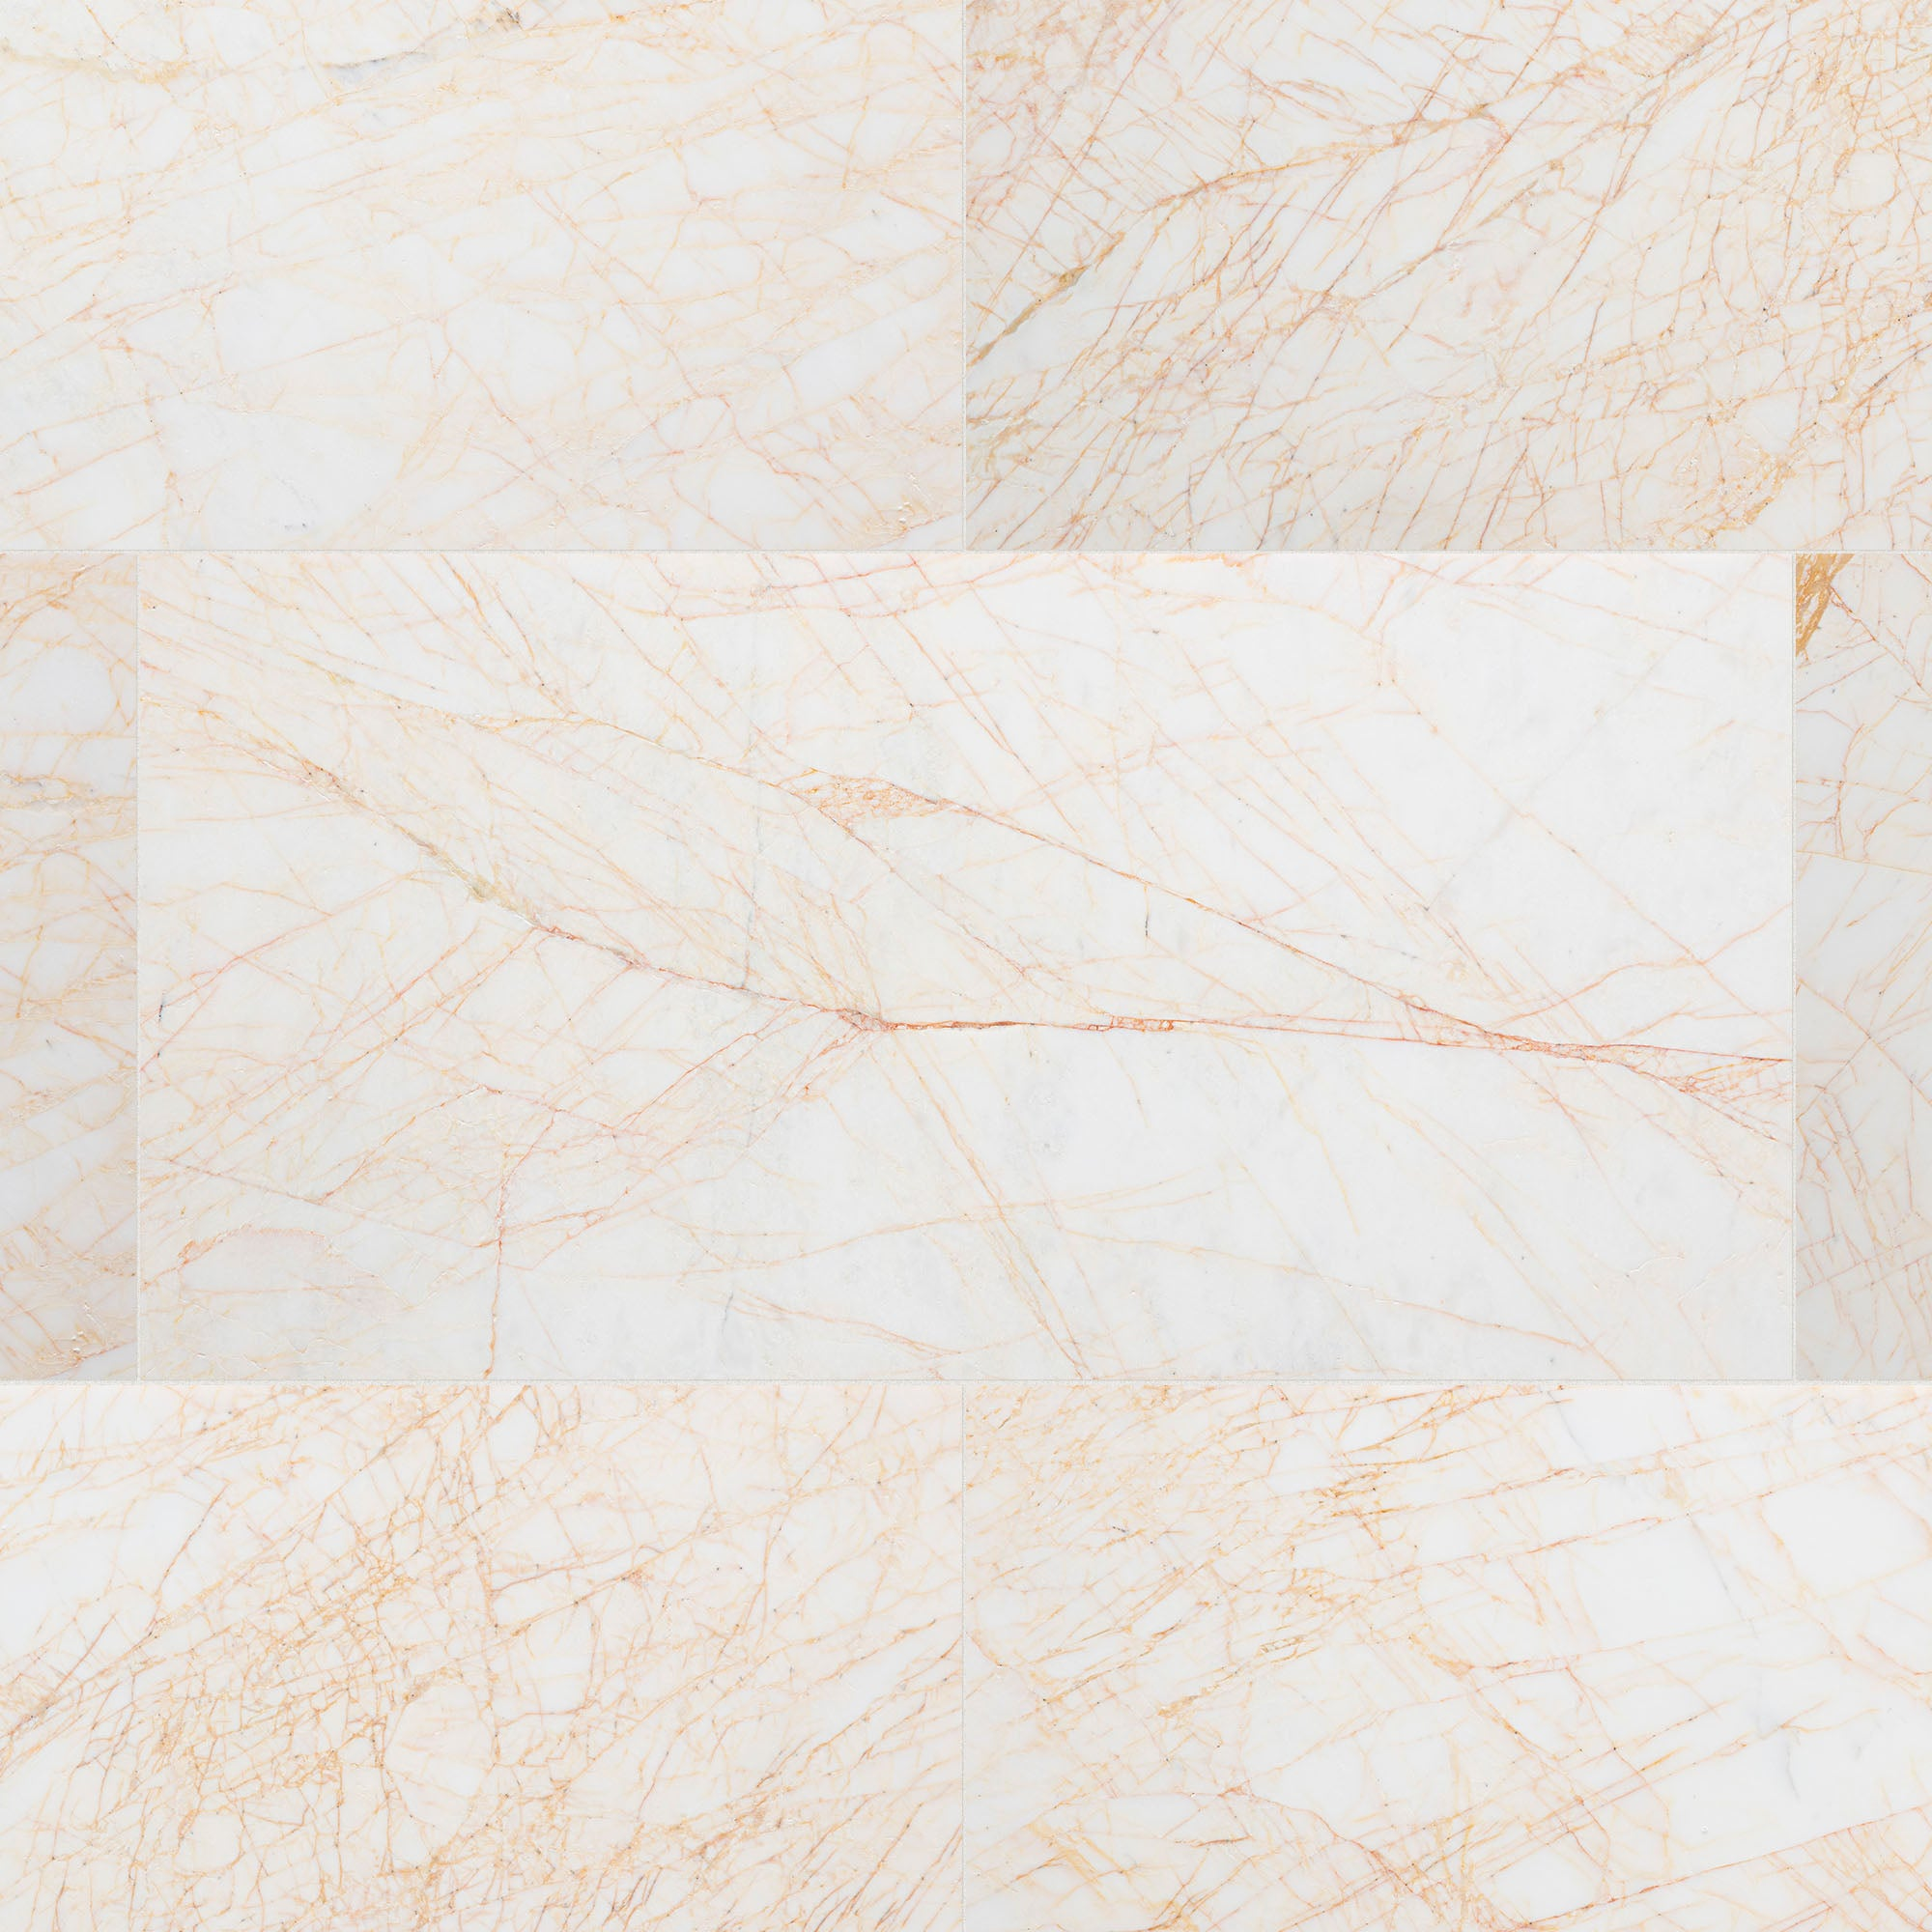 Limone Marmi Marble Swatch Card  Honed Swatch Samples product photo